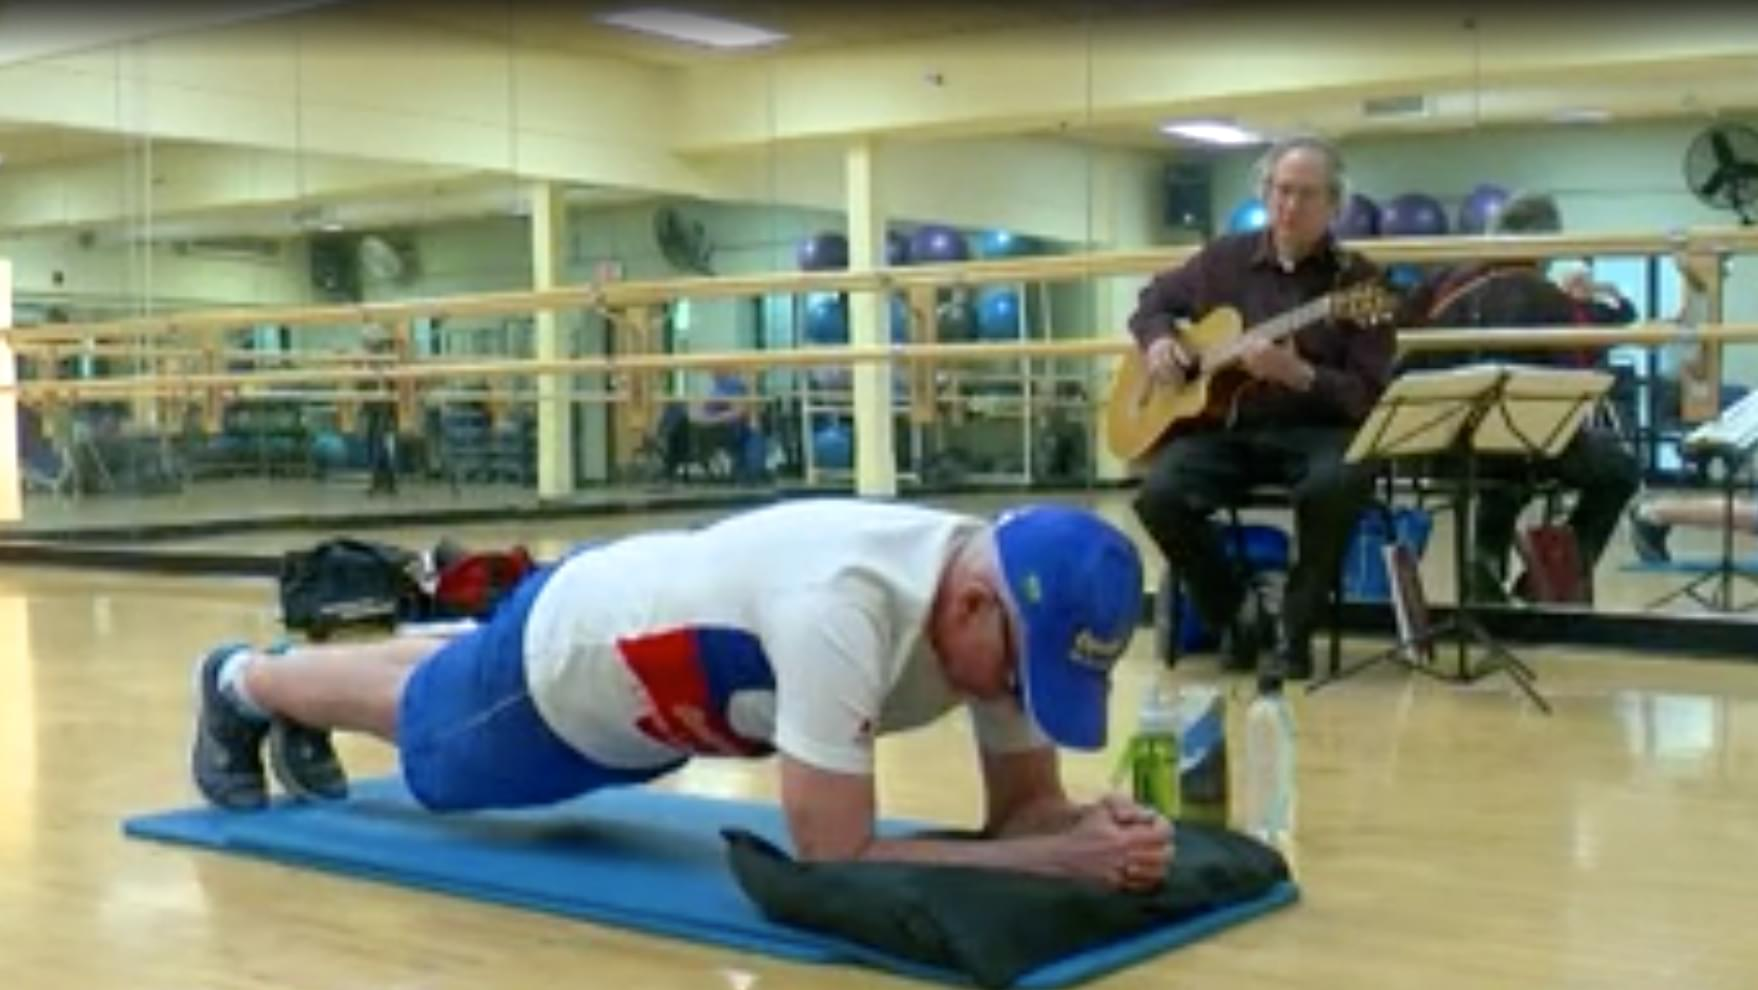 71-year old breaks planking world record